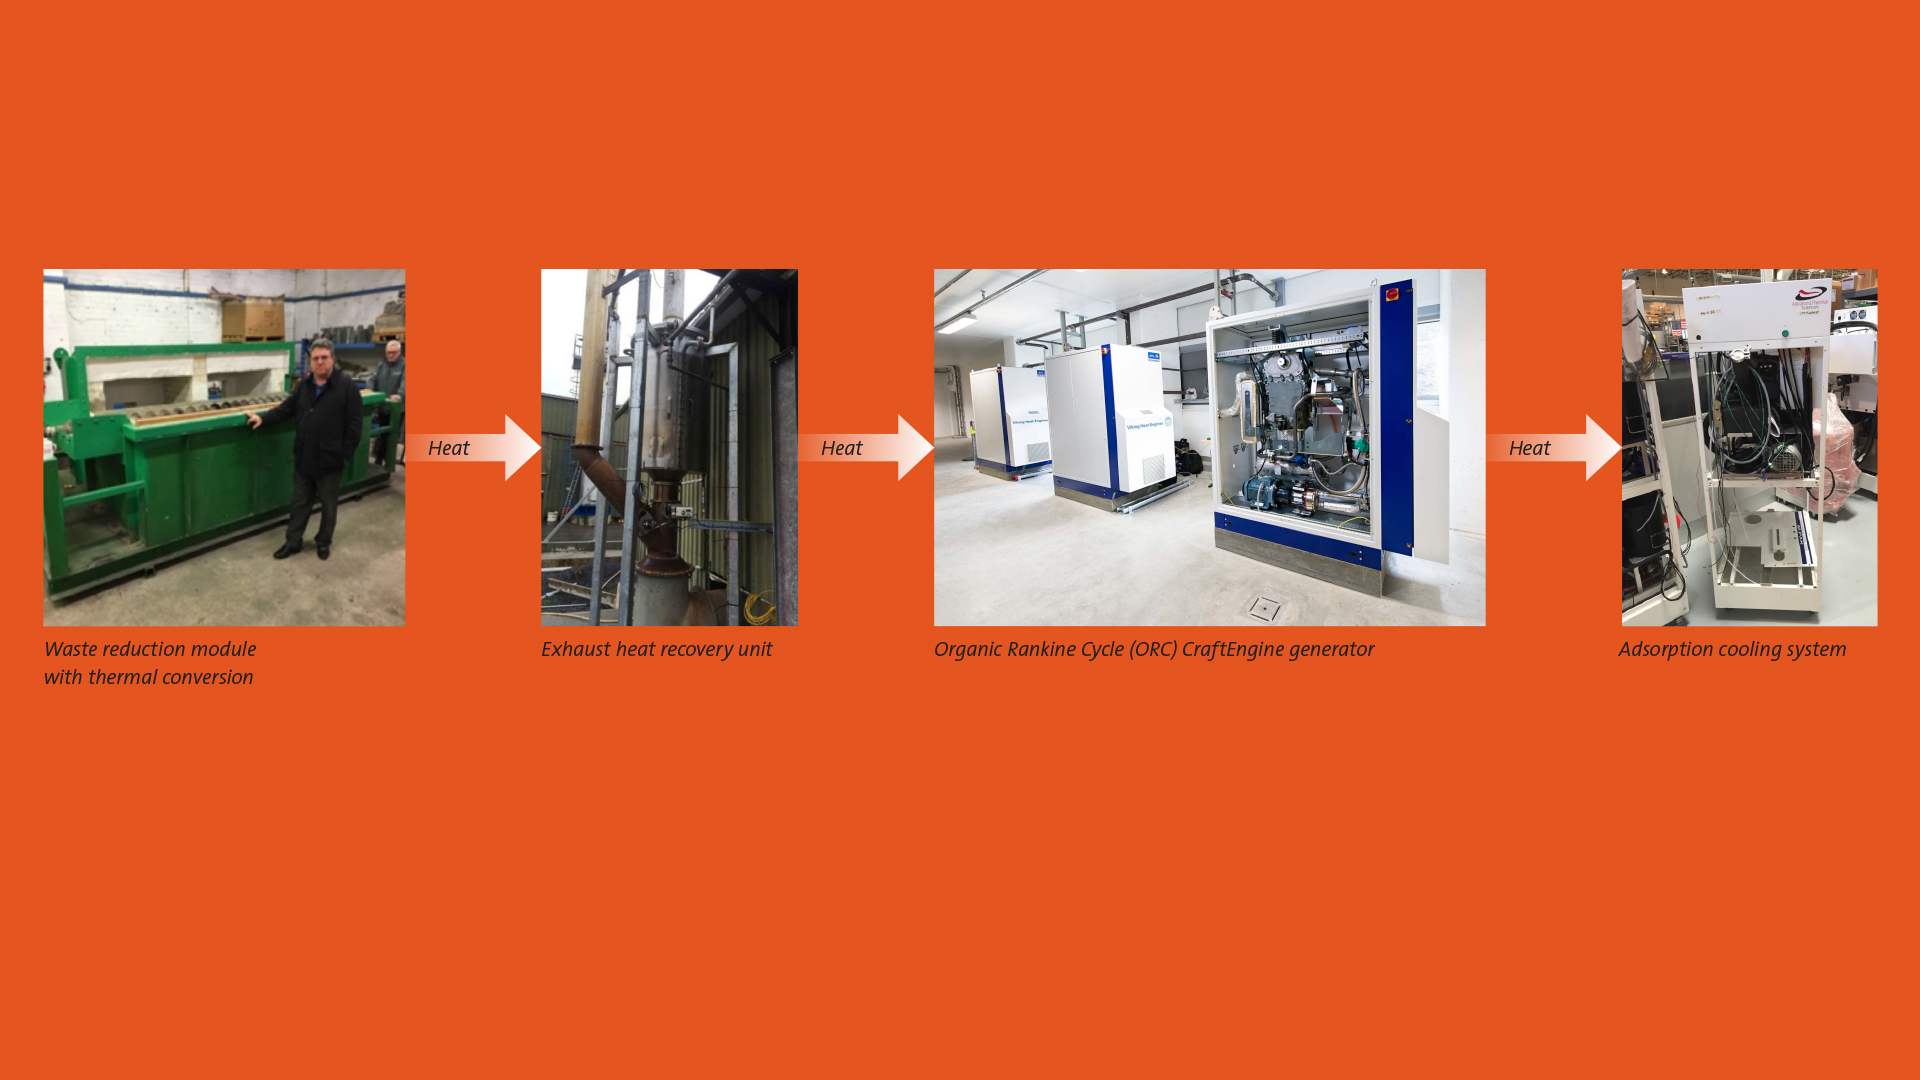 Waste reduction module with thermal conversion, exhaust heat recovery unit, ORC CraftEngine generator and an adsorption cooling system